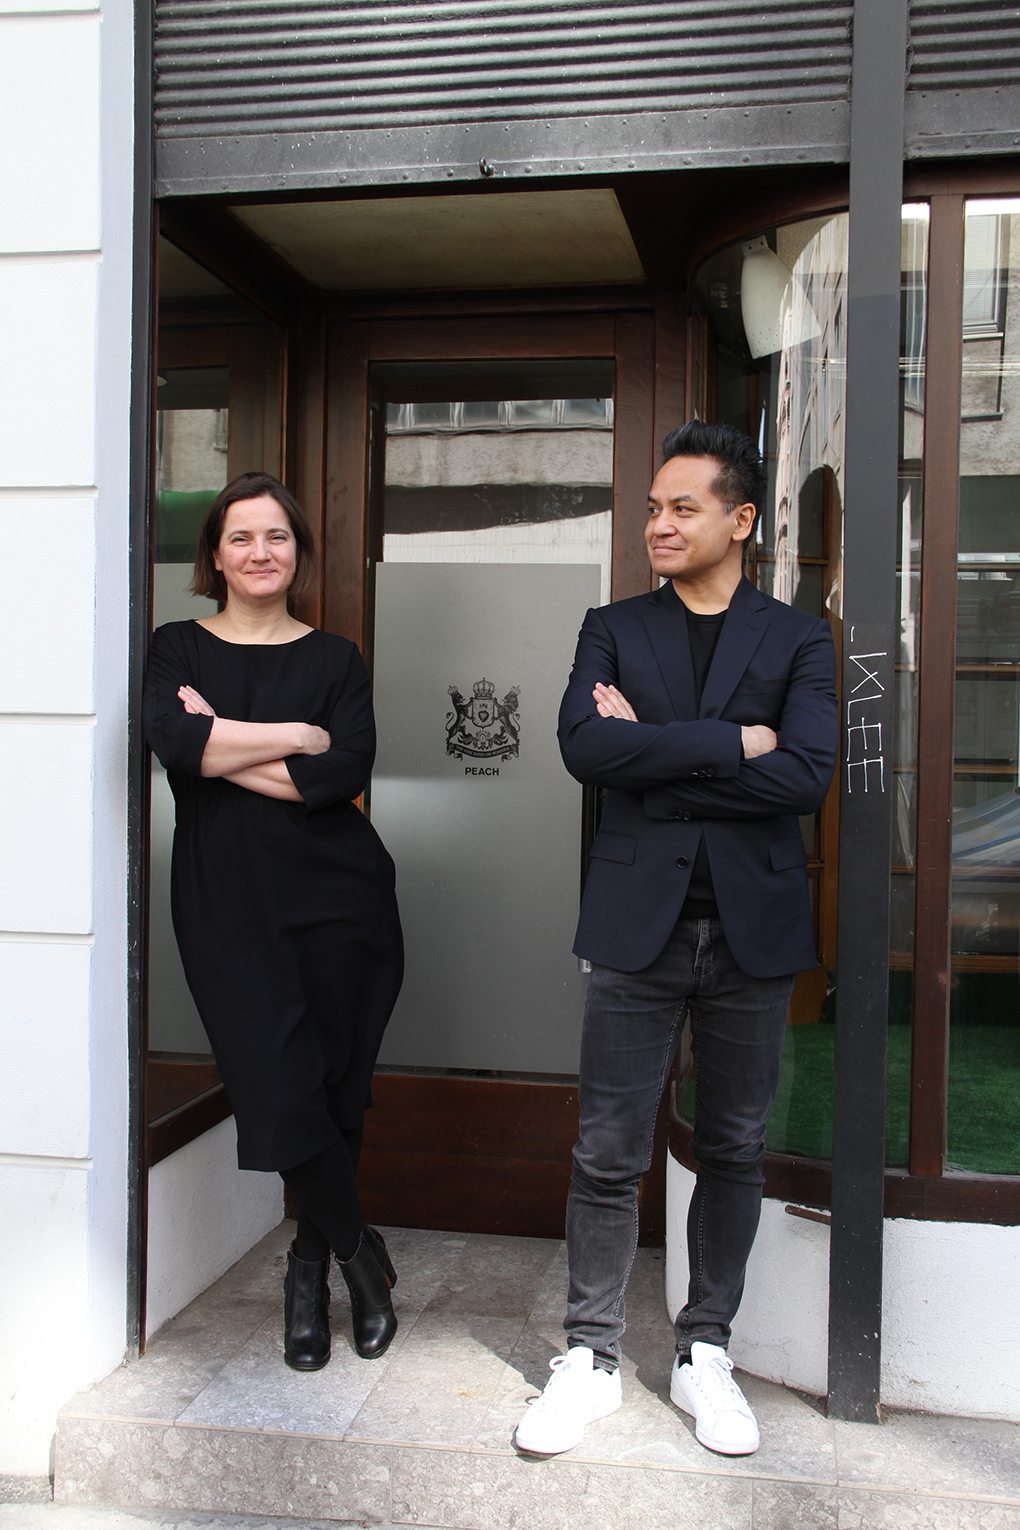 Birgit Vollmeier & Yudi Warsosumarto, The CEOs of PEACH